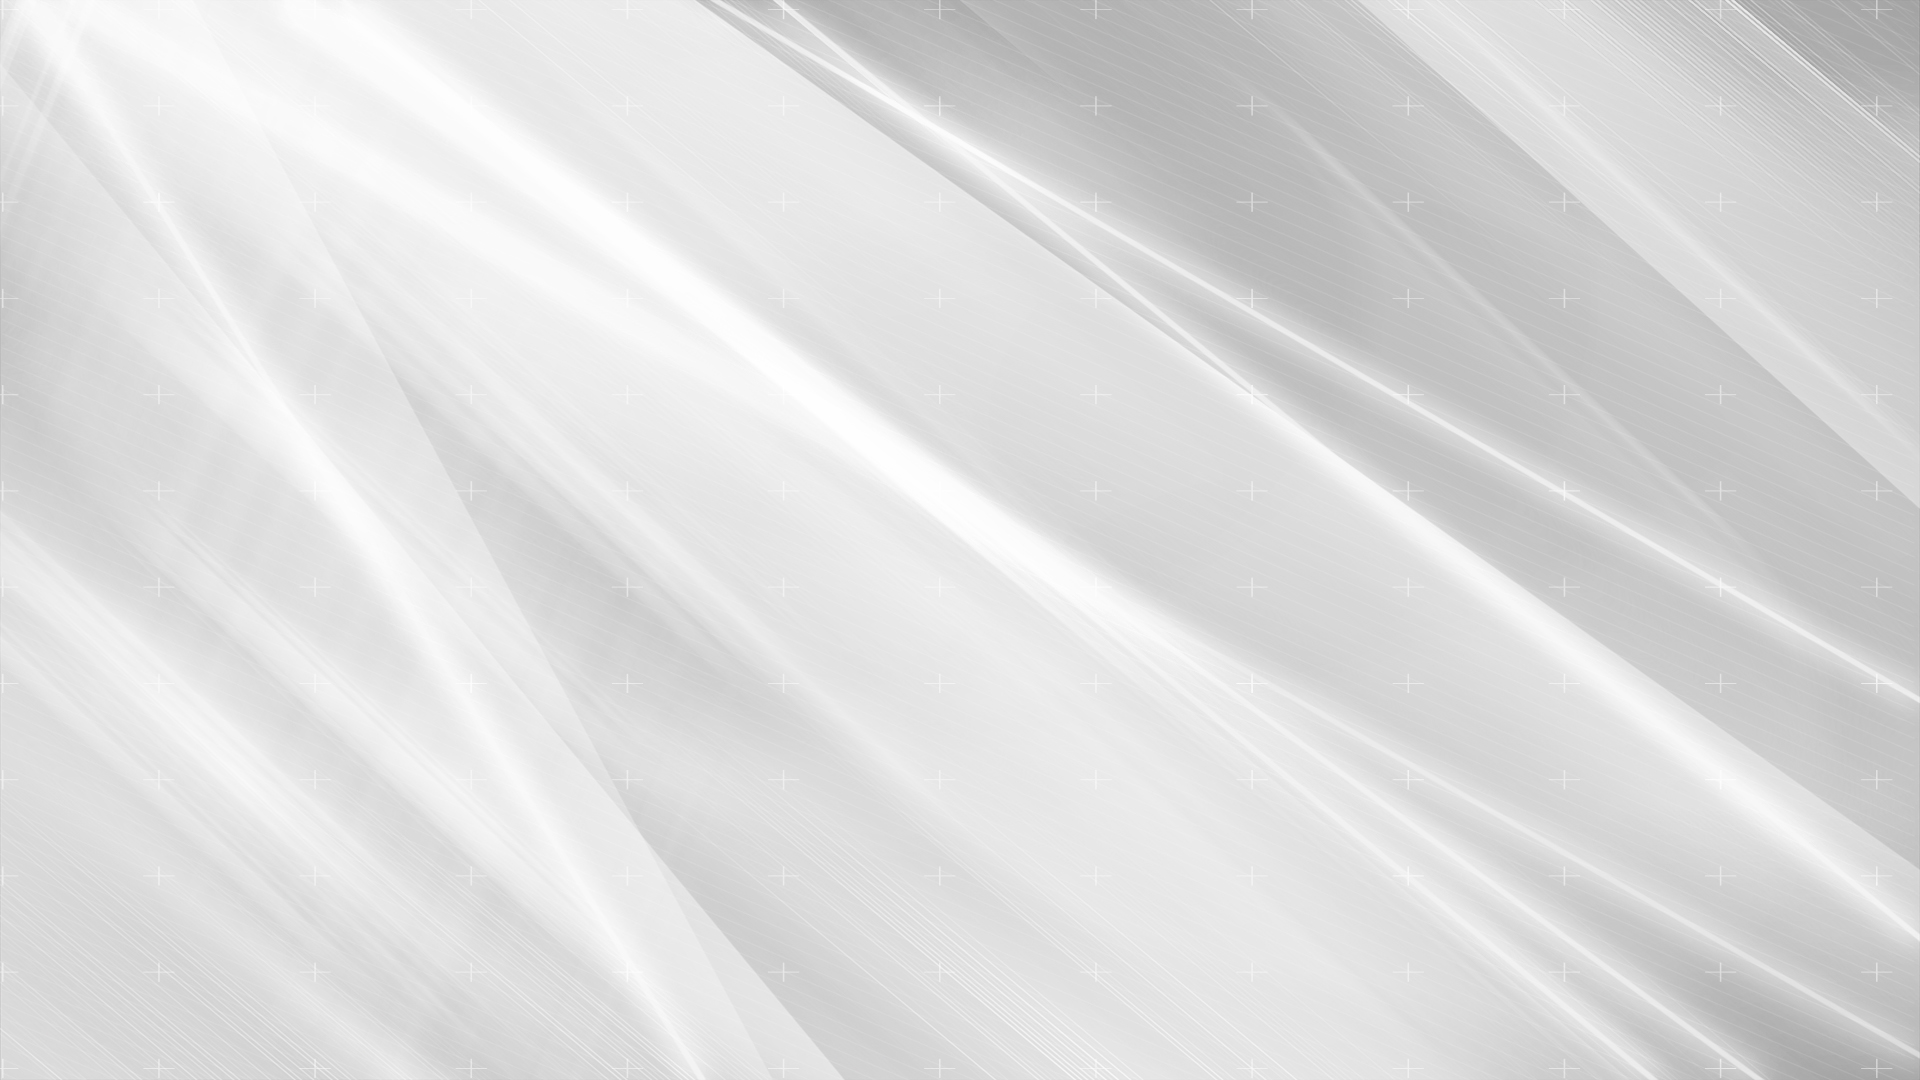 Attachment white abstract 75 wallpaper background hd 1920x1080